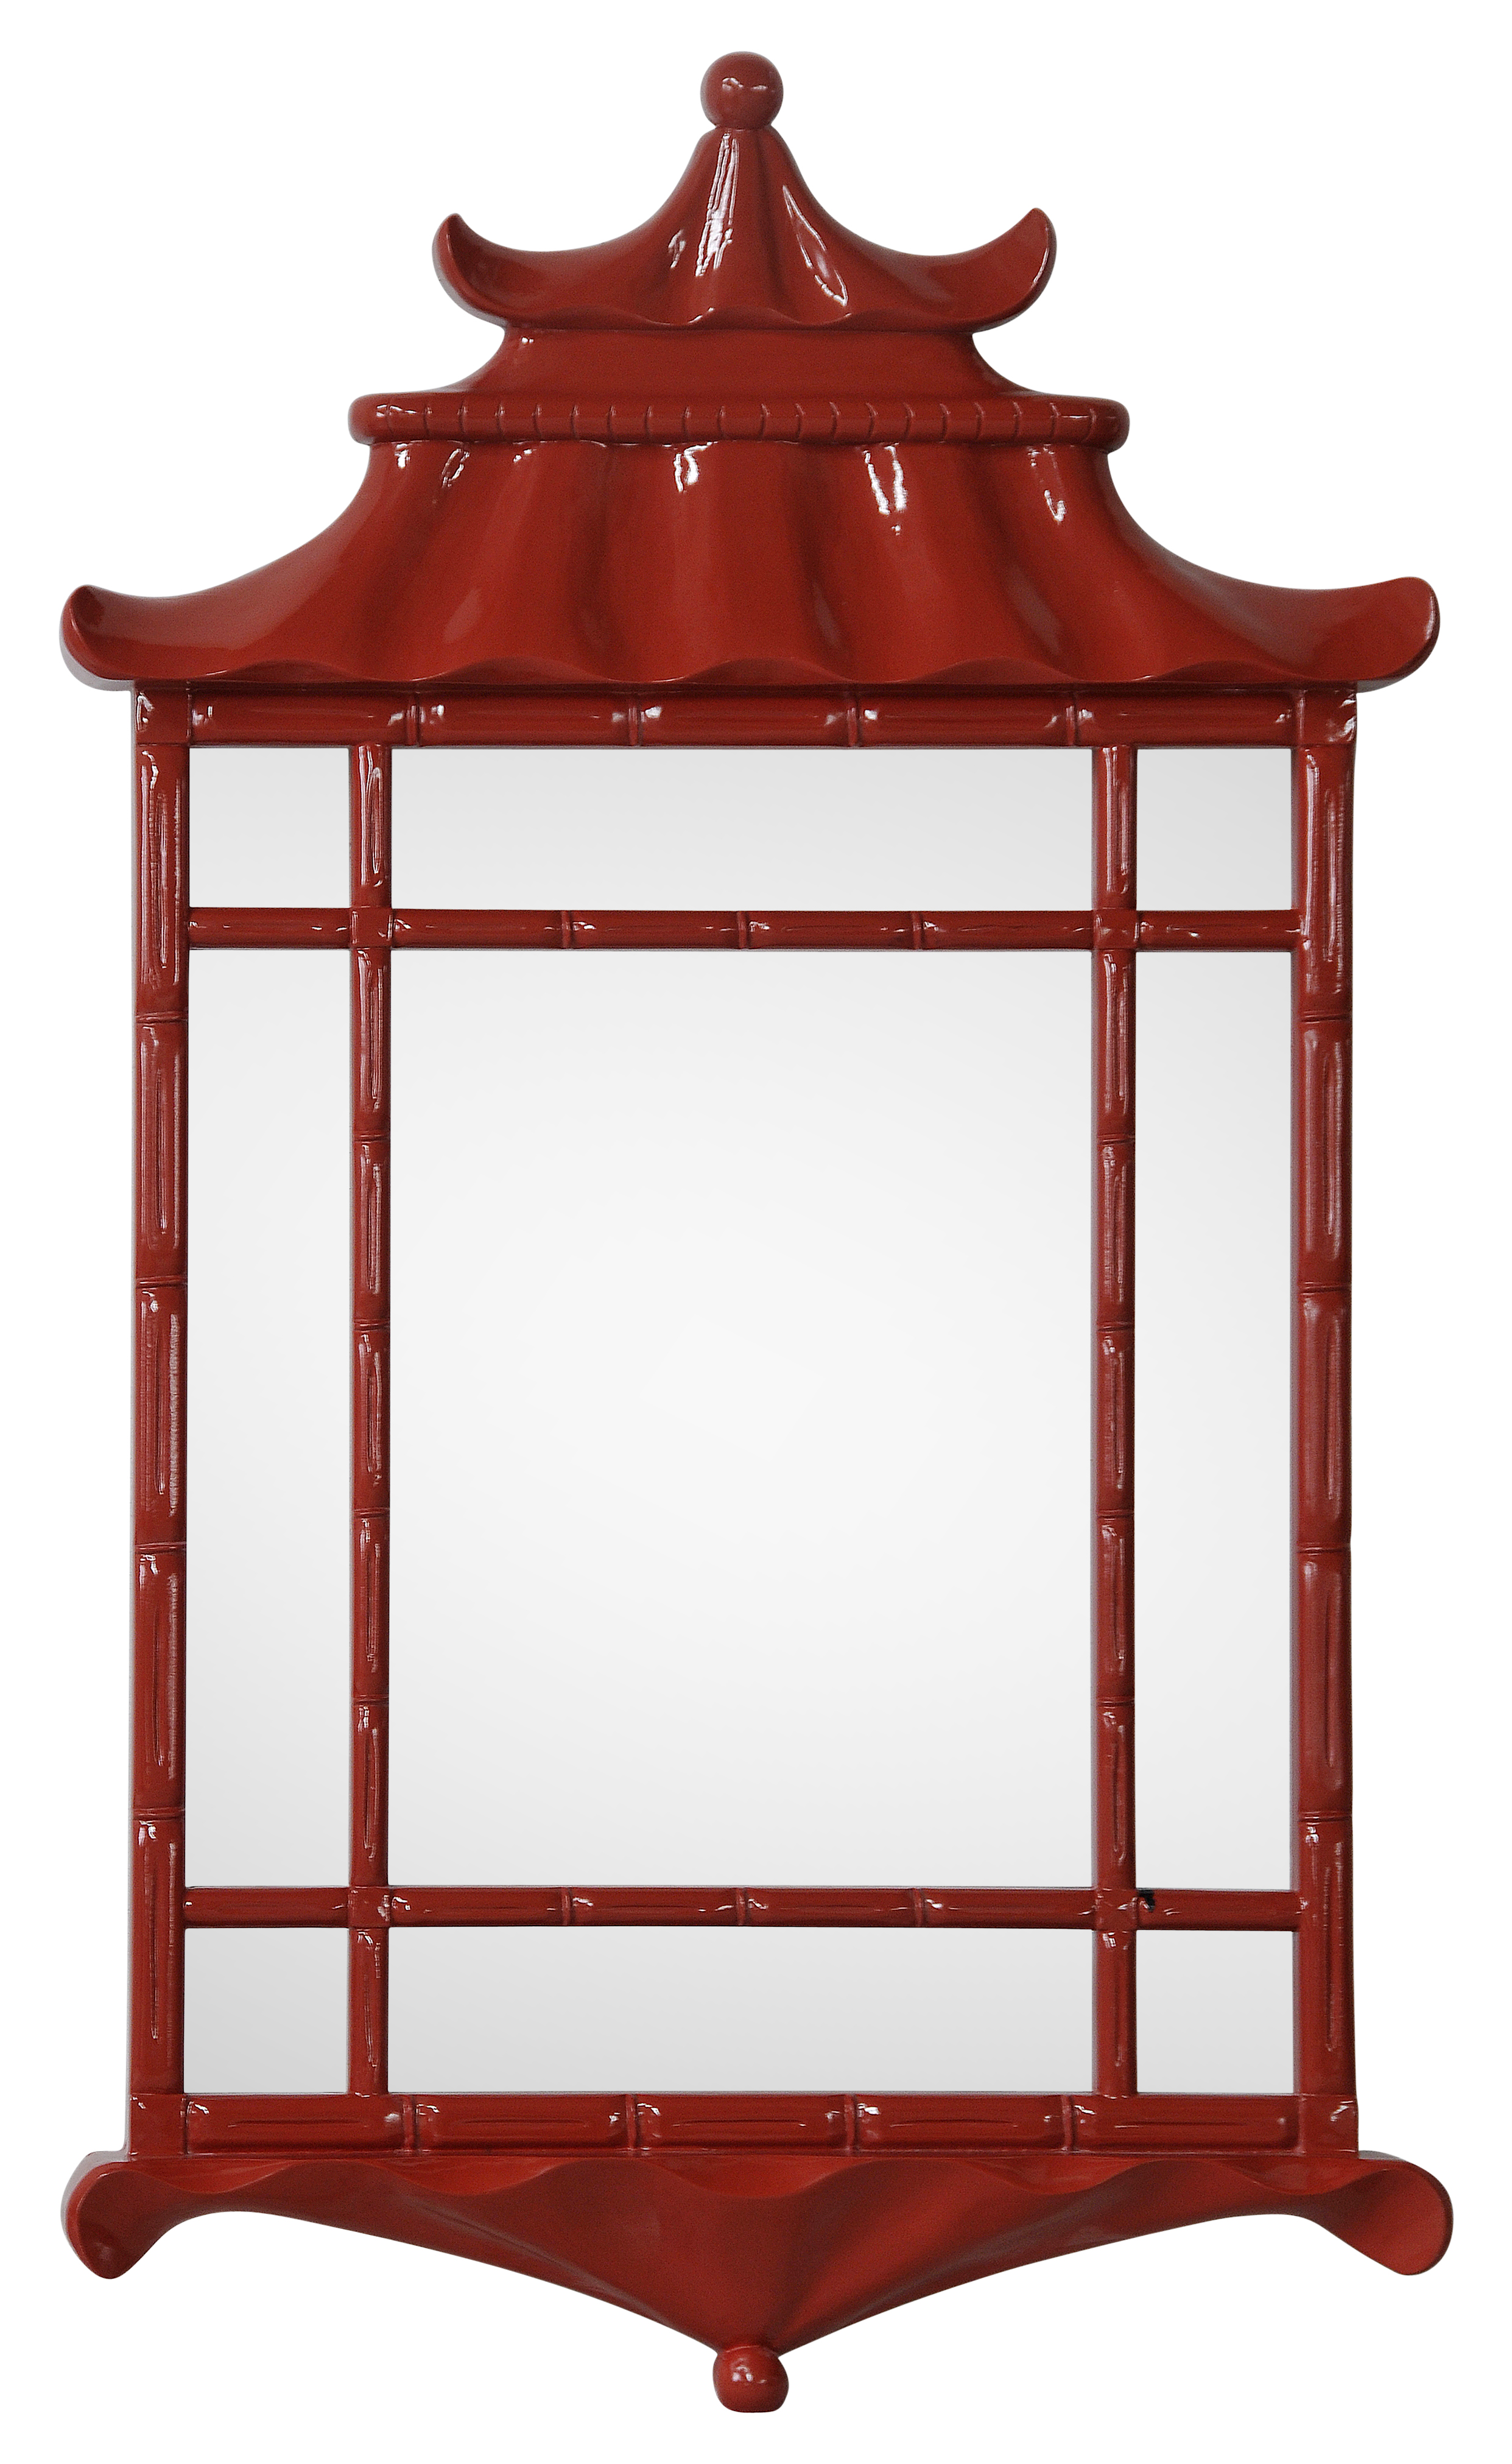 Bunny Williams's Pagoda Mirror for Mirror Image in high-gloss Chinese red.